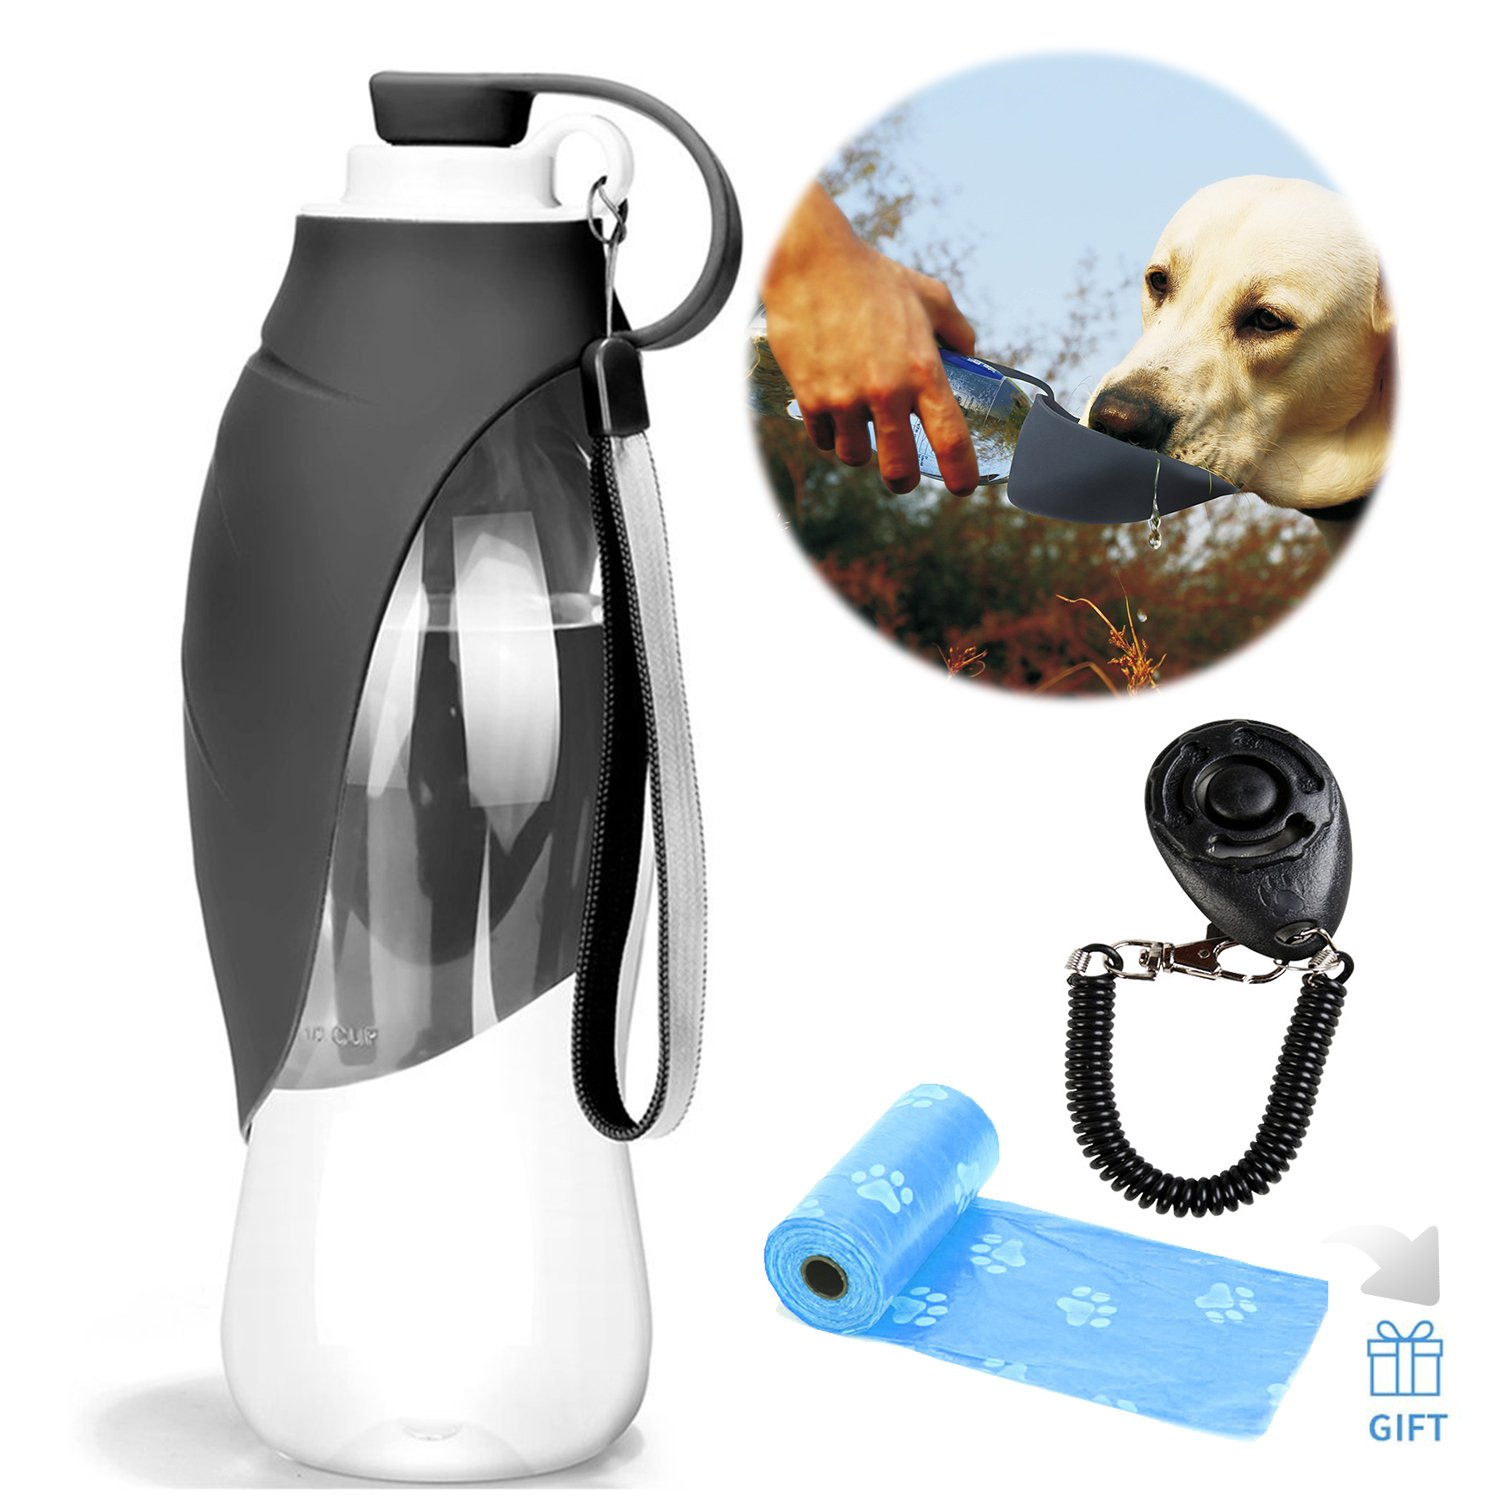 Grey Pet Travel Water Bottle Expandable Silicone Dog Water Bottle Dispenser with Free Dog Training Clicker and Dog Waste Poop Bags